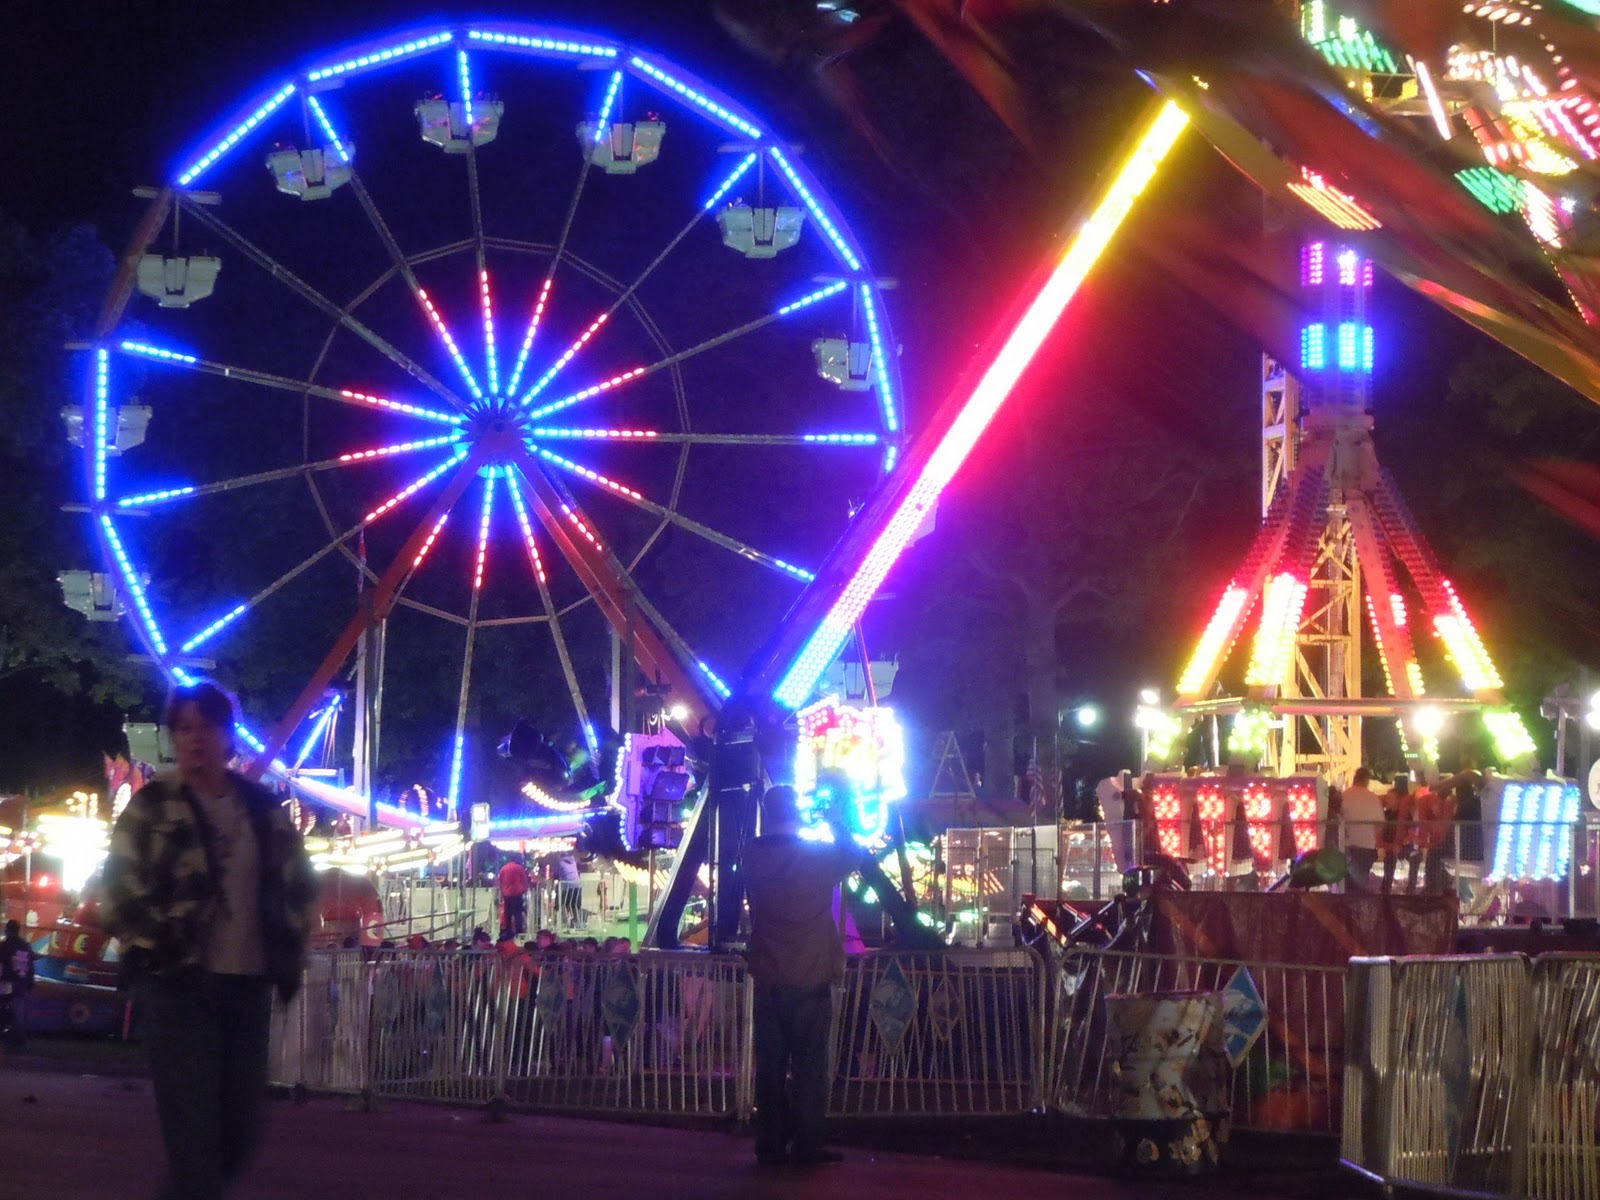 night view of carnival rides including Ferris Wheel in blue lights